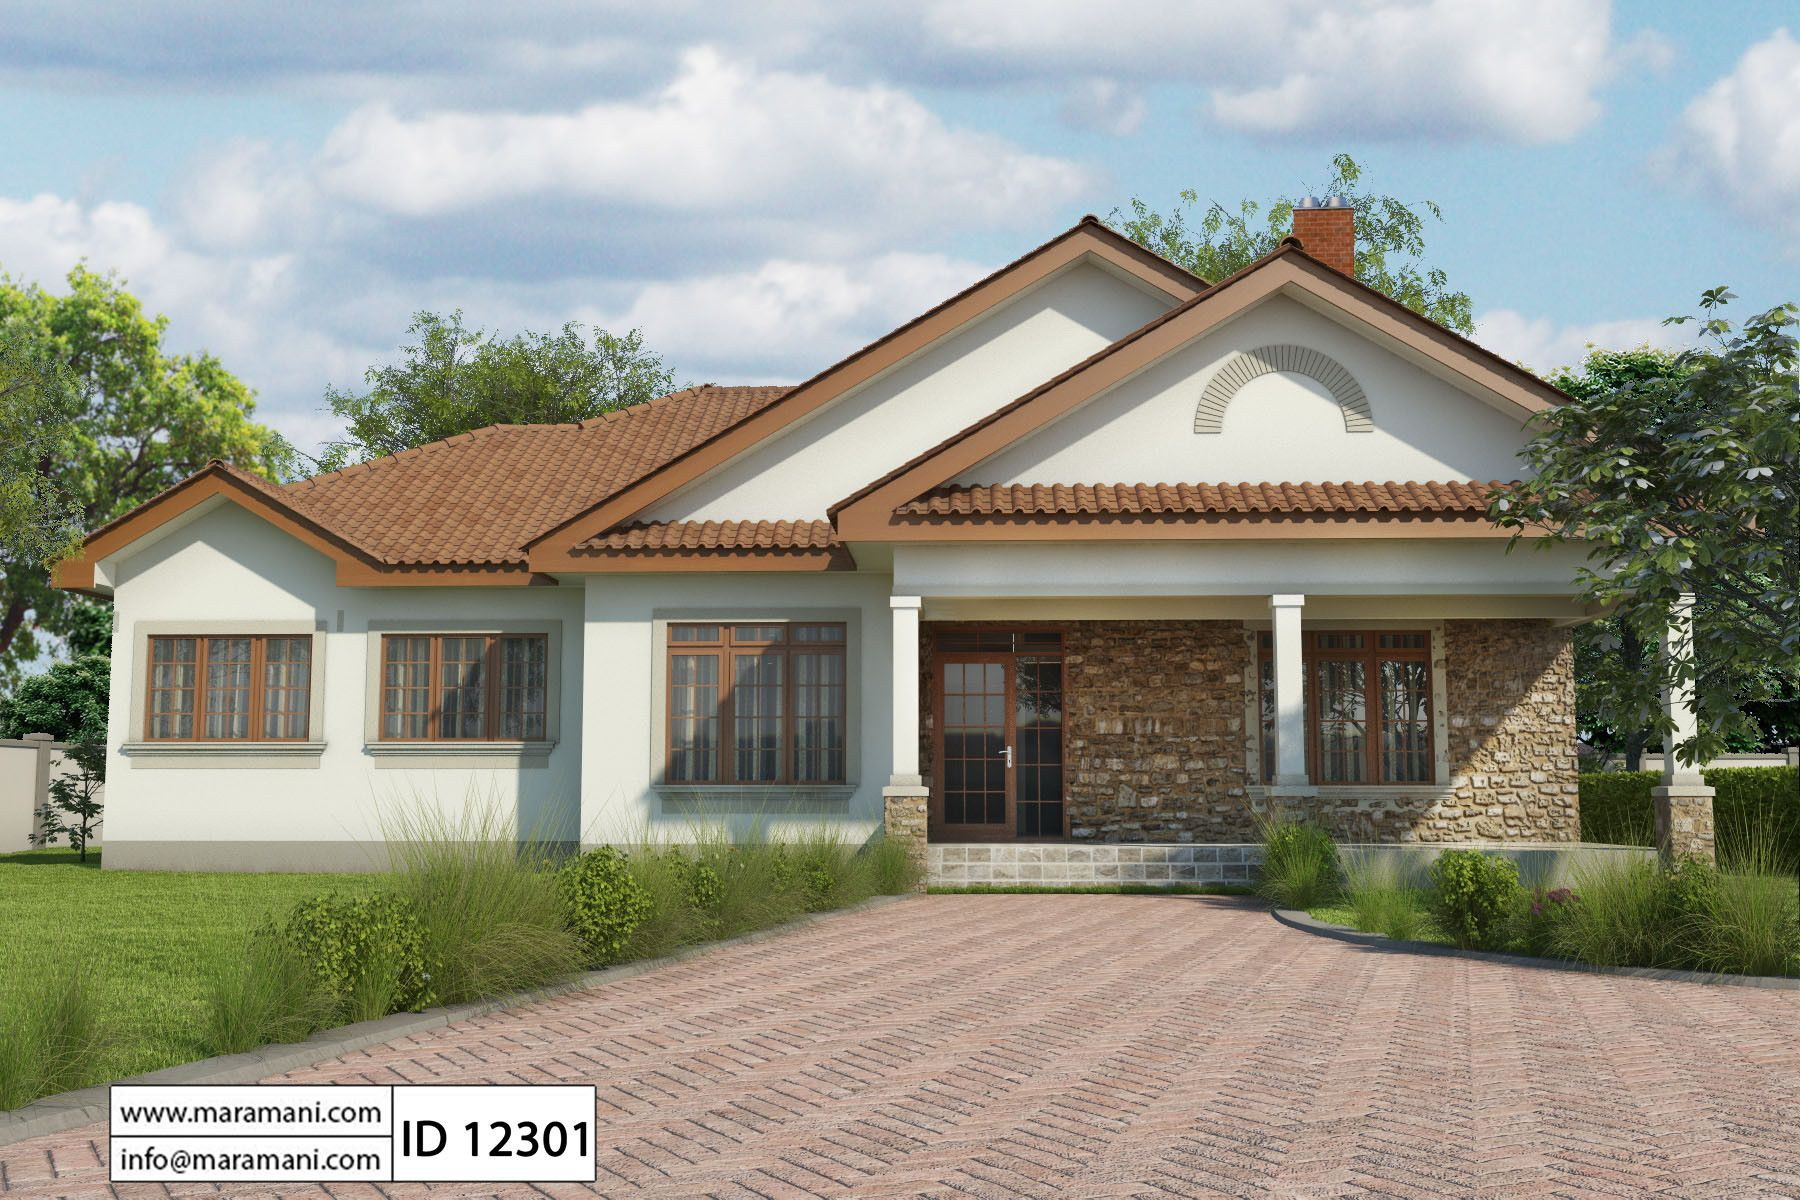 Bedroom House Plans Designs Maramanicom - Simple 2 bedroom house design